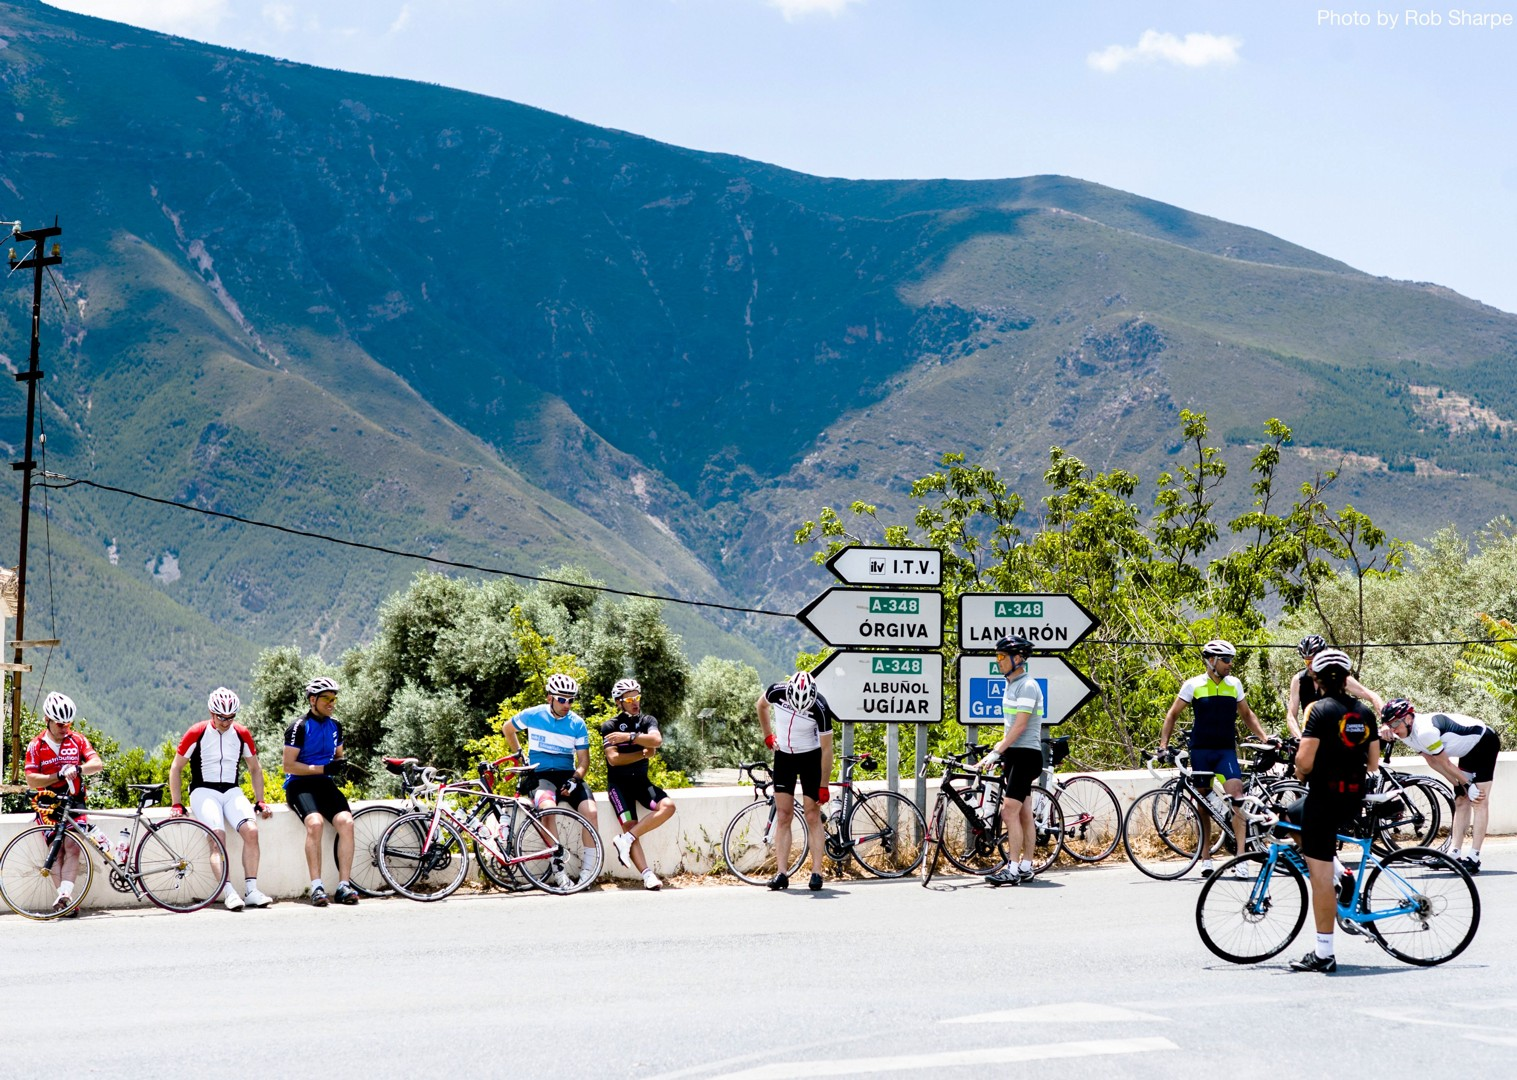 day3_carrera_del_diablo_093 copy.jpg - Southern Spain - Andalucia - Los Pueblos Blancos - Road Cycling